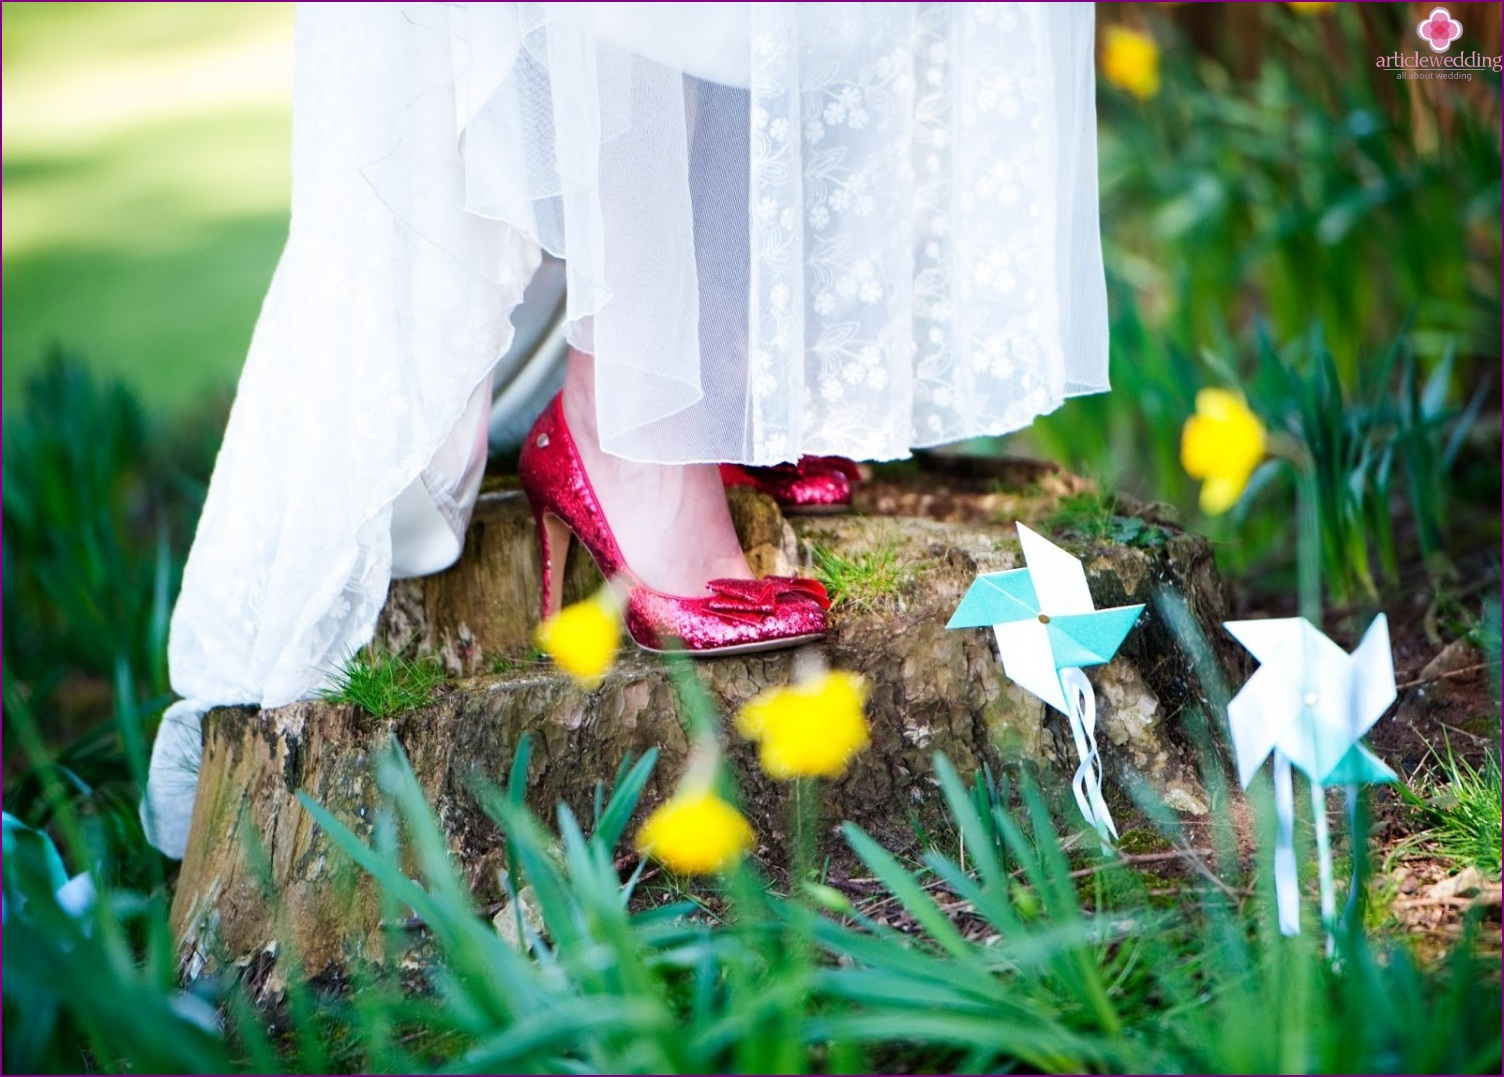 Shoes of the bride in the style of the Wizard of the Emerald City